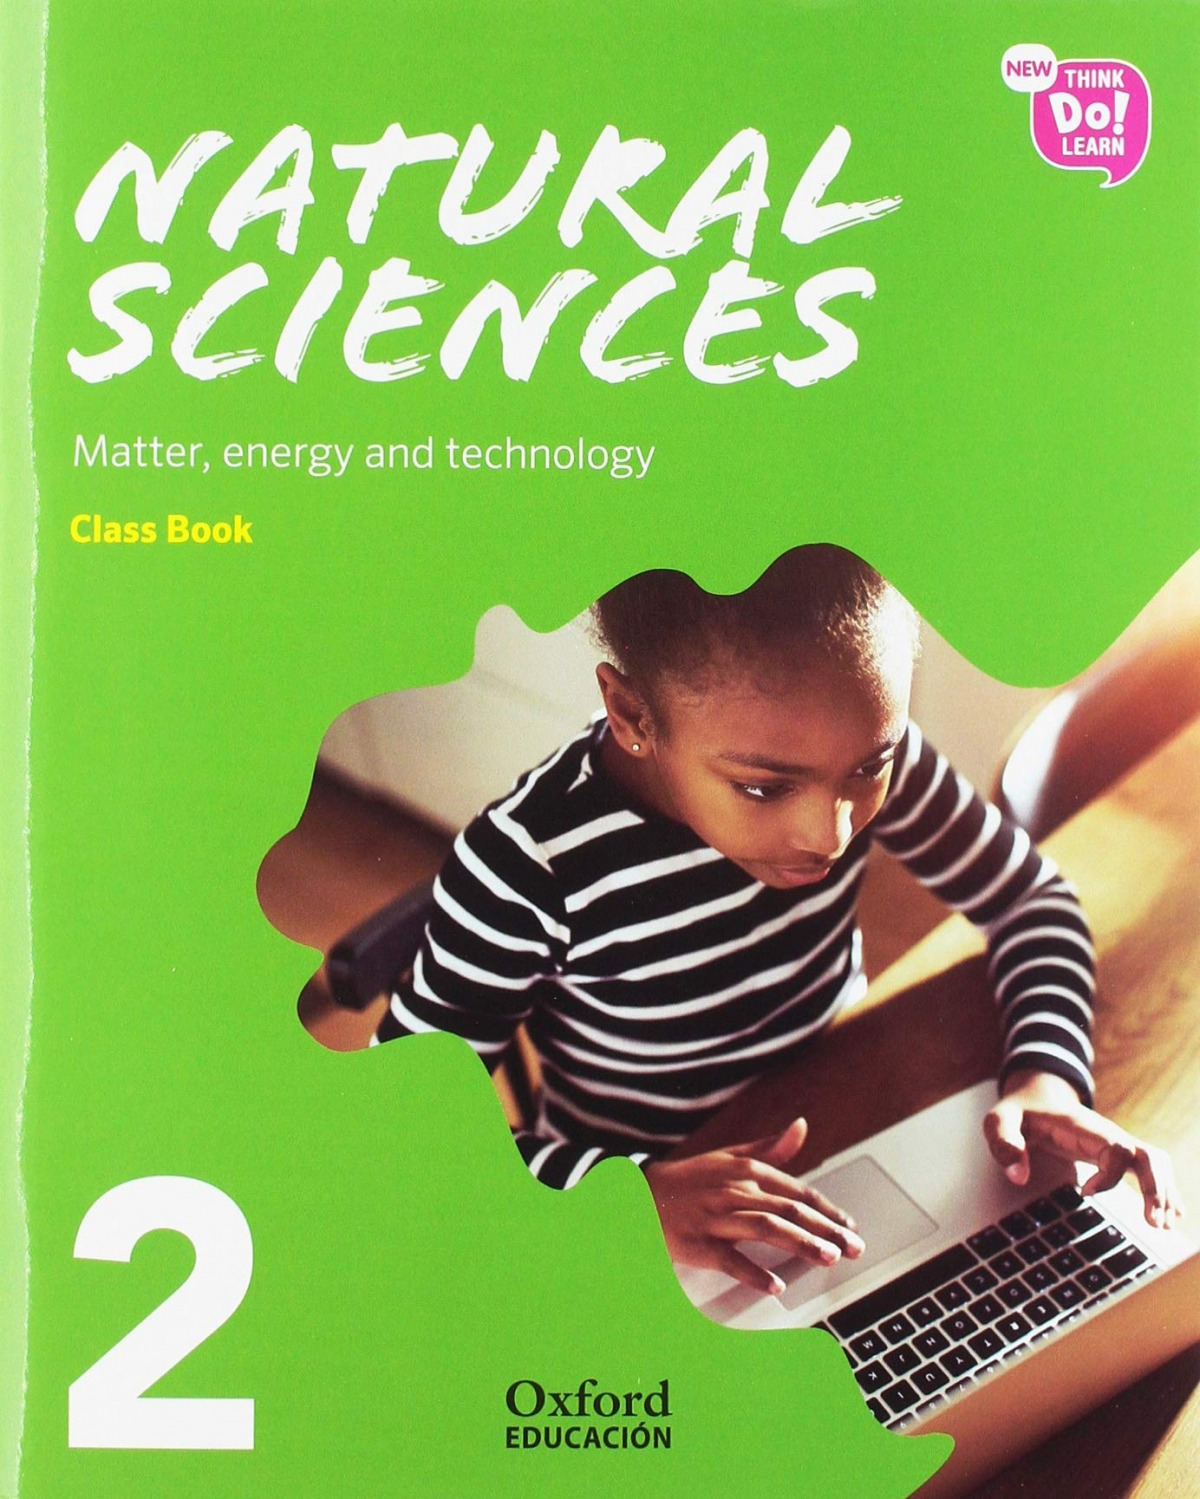 NATURAL SCIENCE 2 PRIMARY MODULE 3 COURSEBOOK PACK NEW THINK DO LEARN